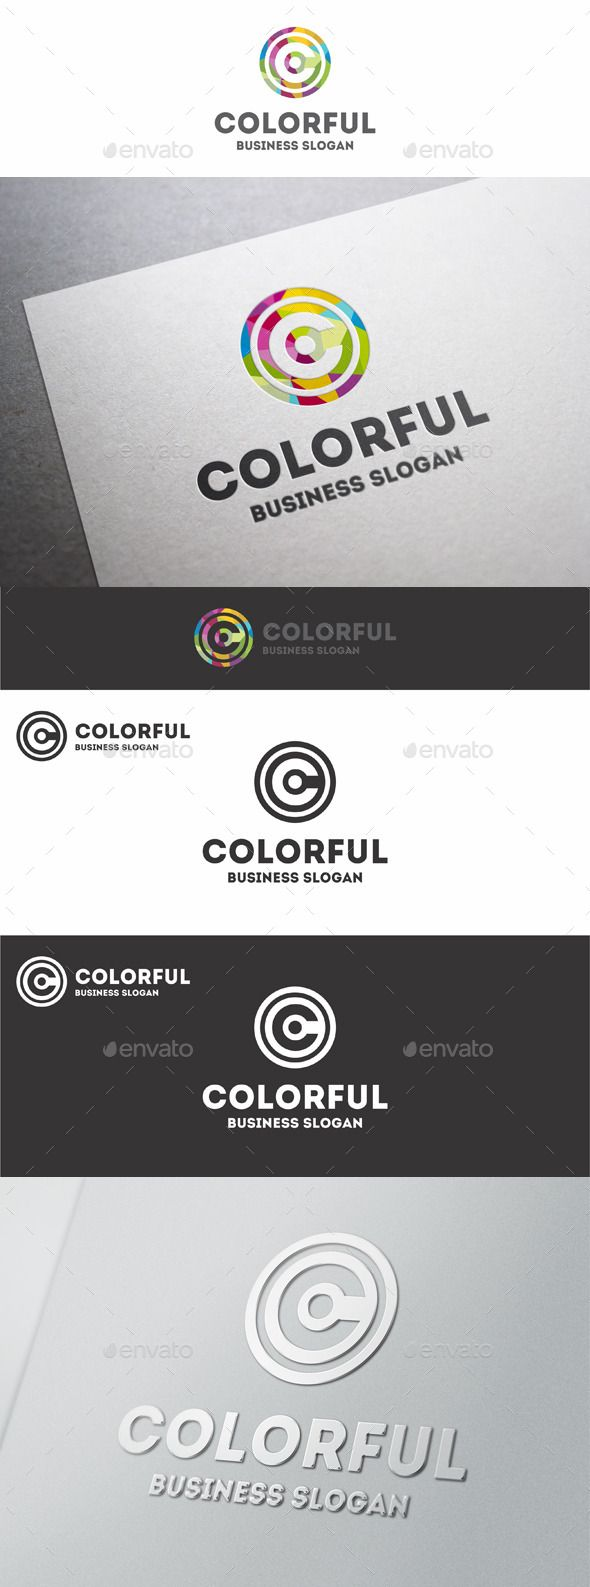 Fine 10 Steps To Writing A Resume Tiny 10 Tips For Writing A Resume Clean 10 Words To Put On Your Resume 1099 Templates Old 12 Hour Schedule Template Black17 Year Old Resume Template Creative Colorful Circles C Letter Logo   Template, Circles And ..